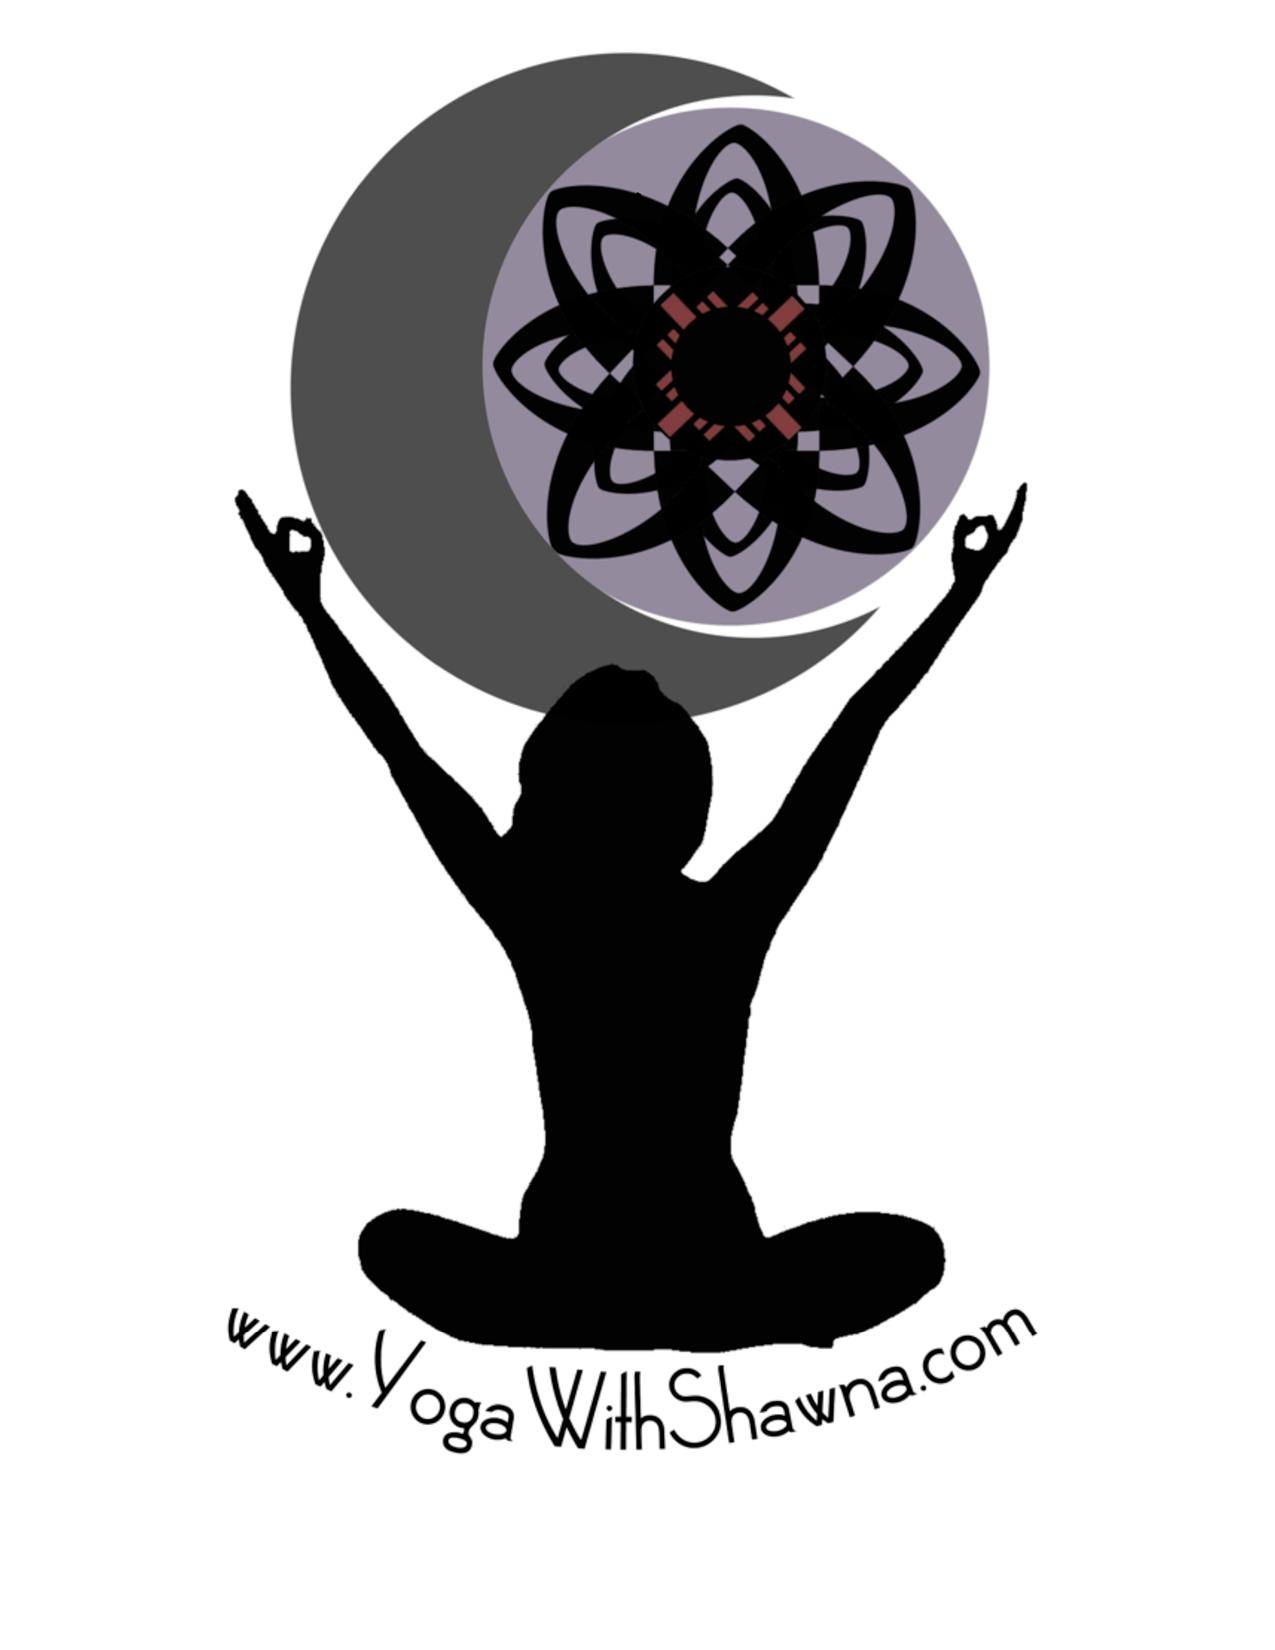 Yoga With Shawna